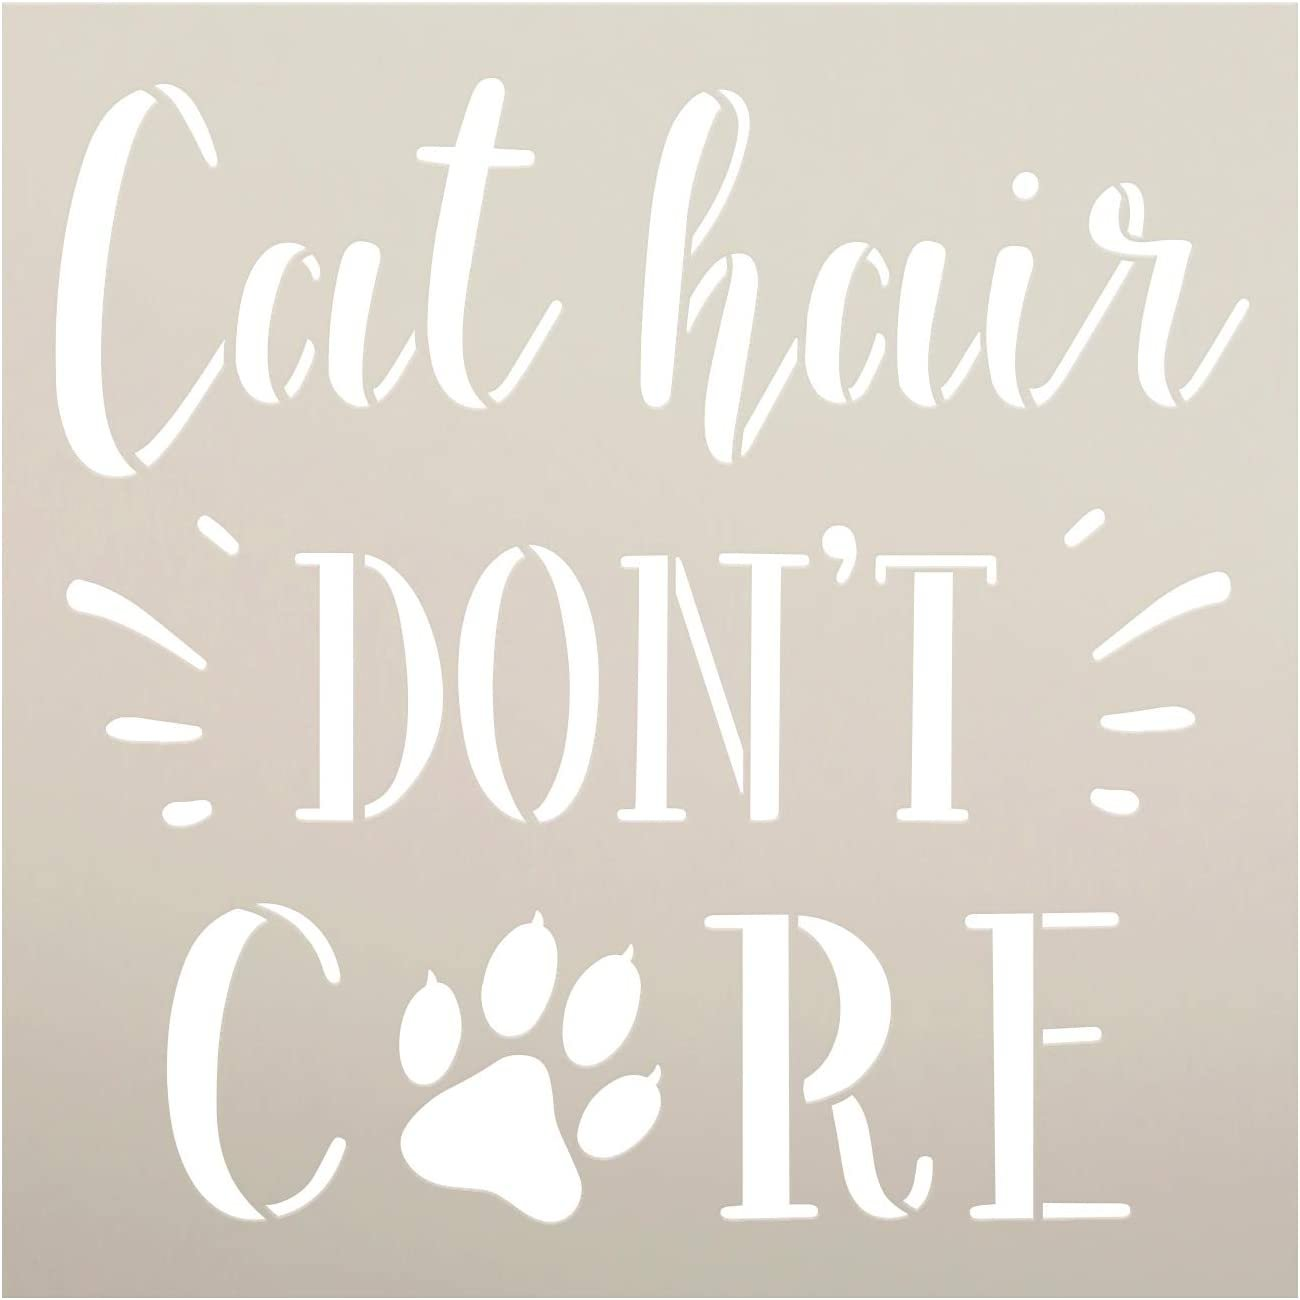 Cat Hair Dont Care Stencil by StudioR12   DIY Kitty Pawprint Whisker Home Decor Gift   Craft & Paint Wood Sign Reusable Mylar Template   Select Size